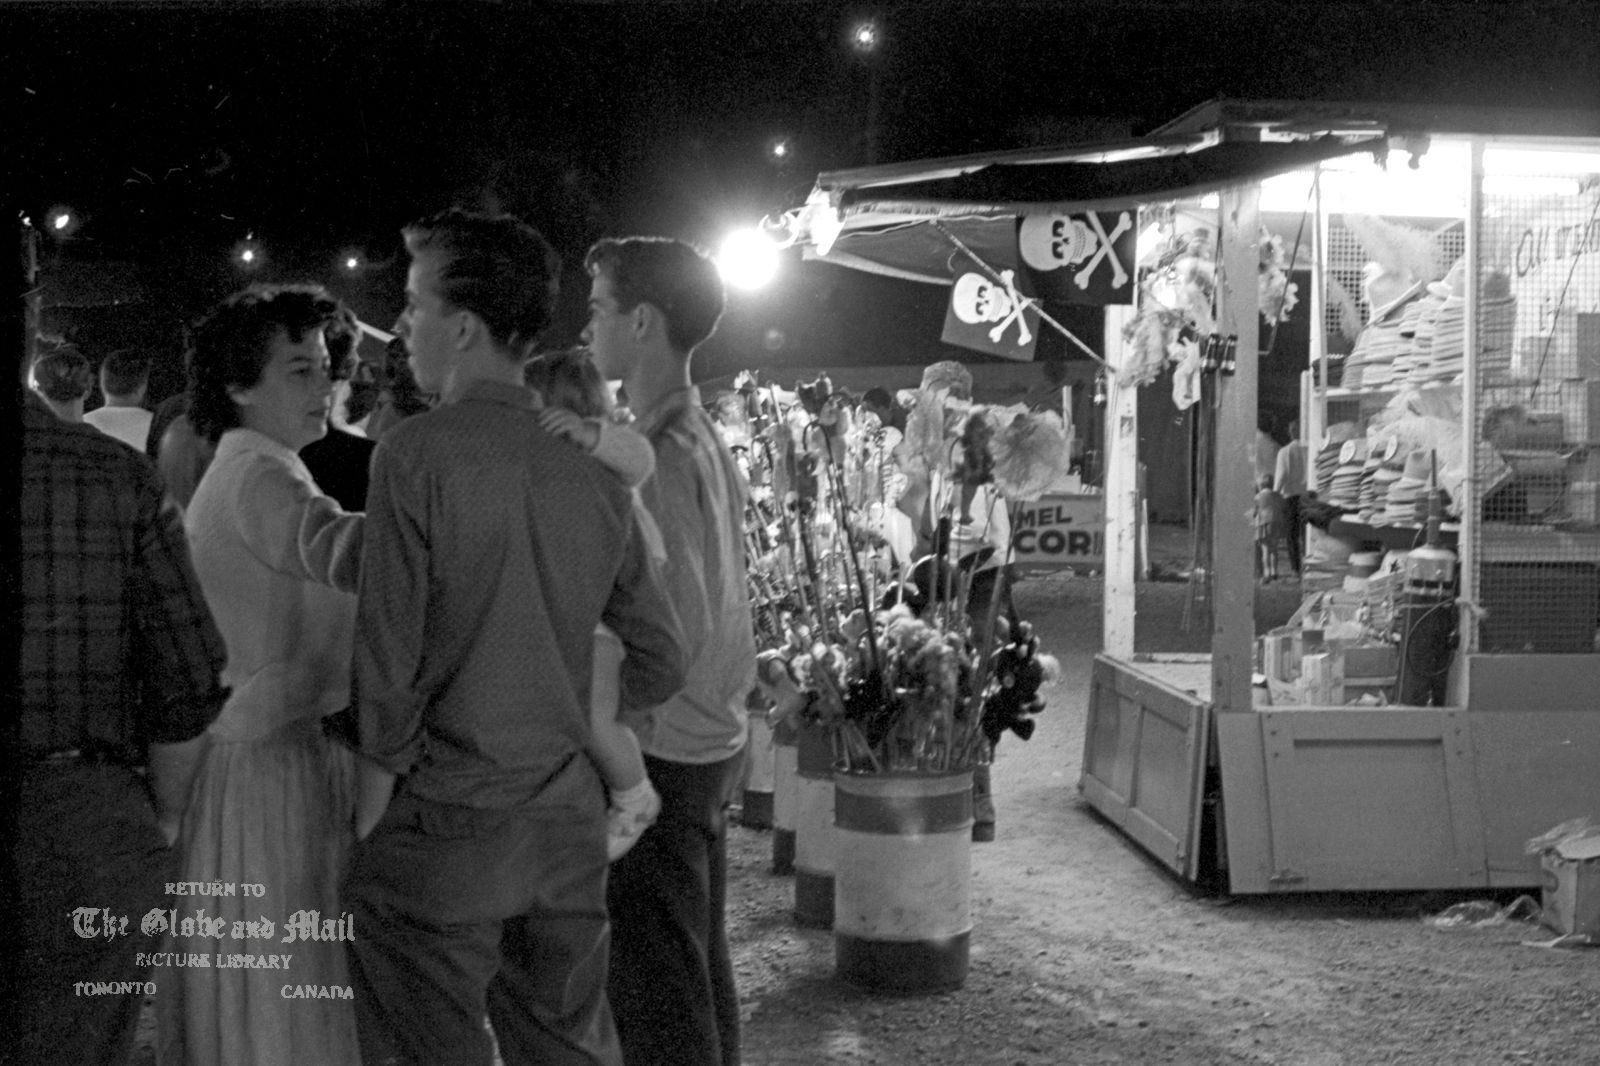 1962. Brampton Fall Fair, carnival area, September 14, 1962. Photo by John Boyd / The Globe and Mail. Neg. #62257-04a